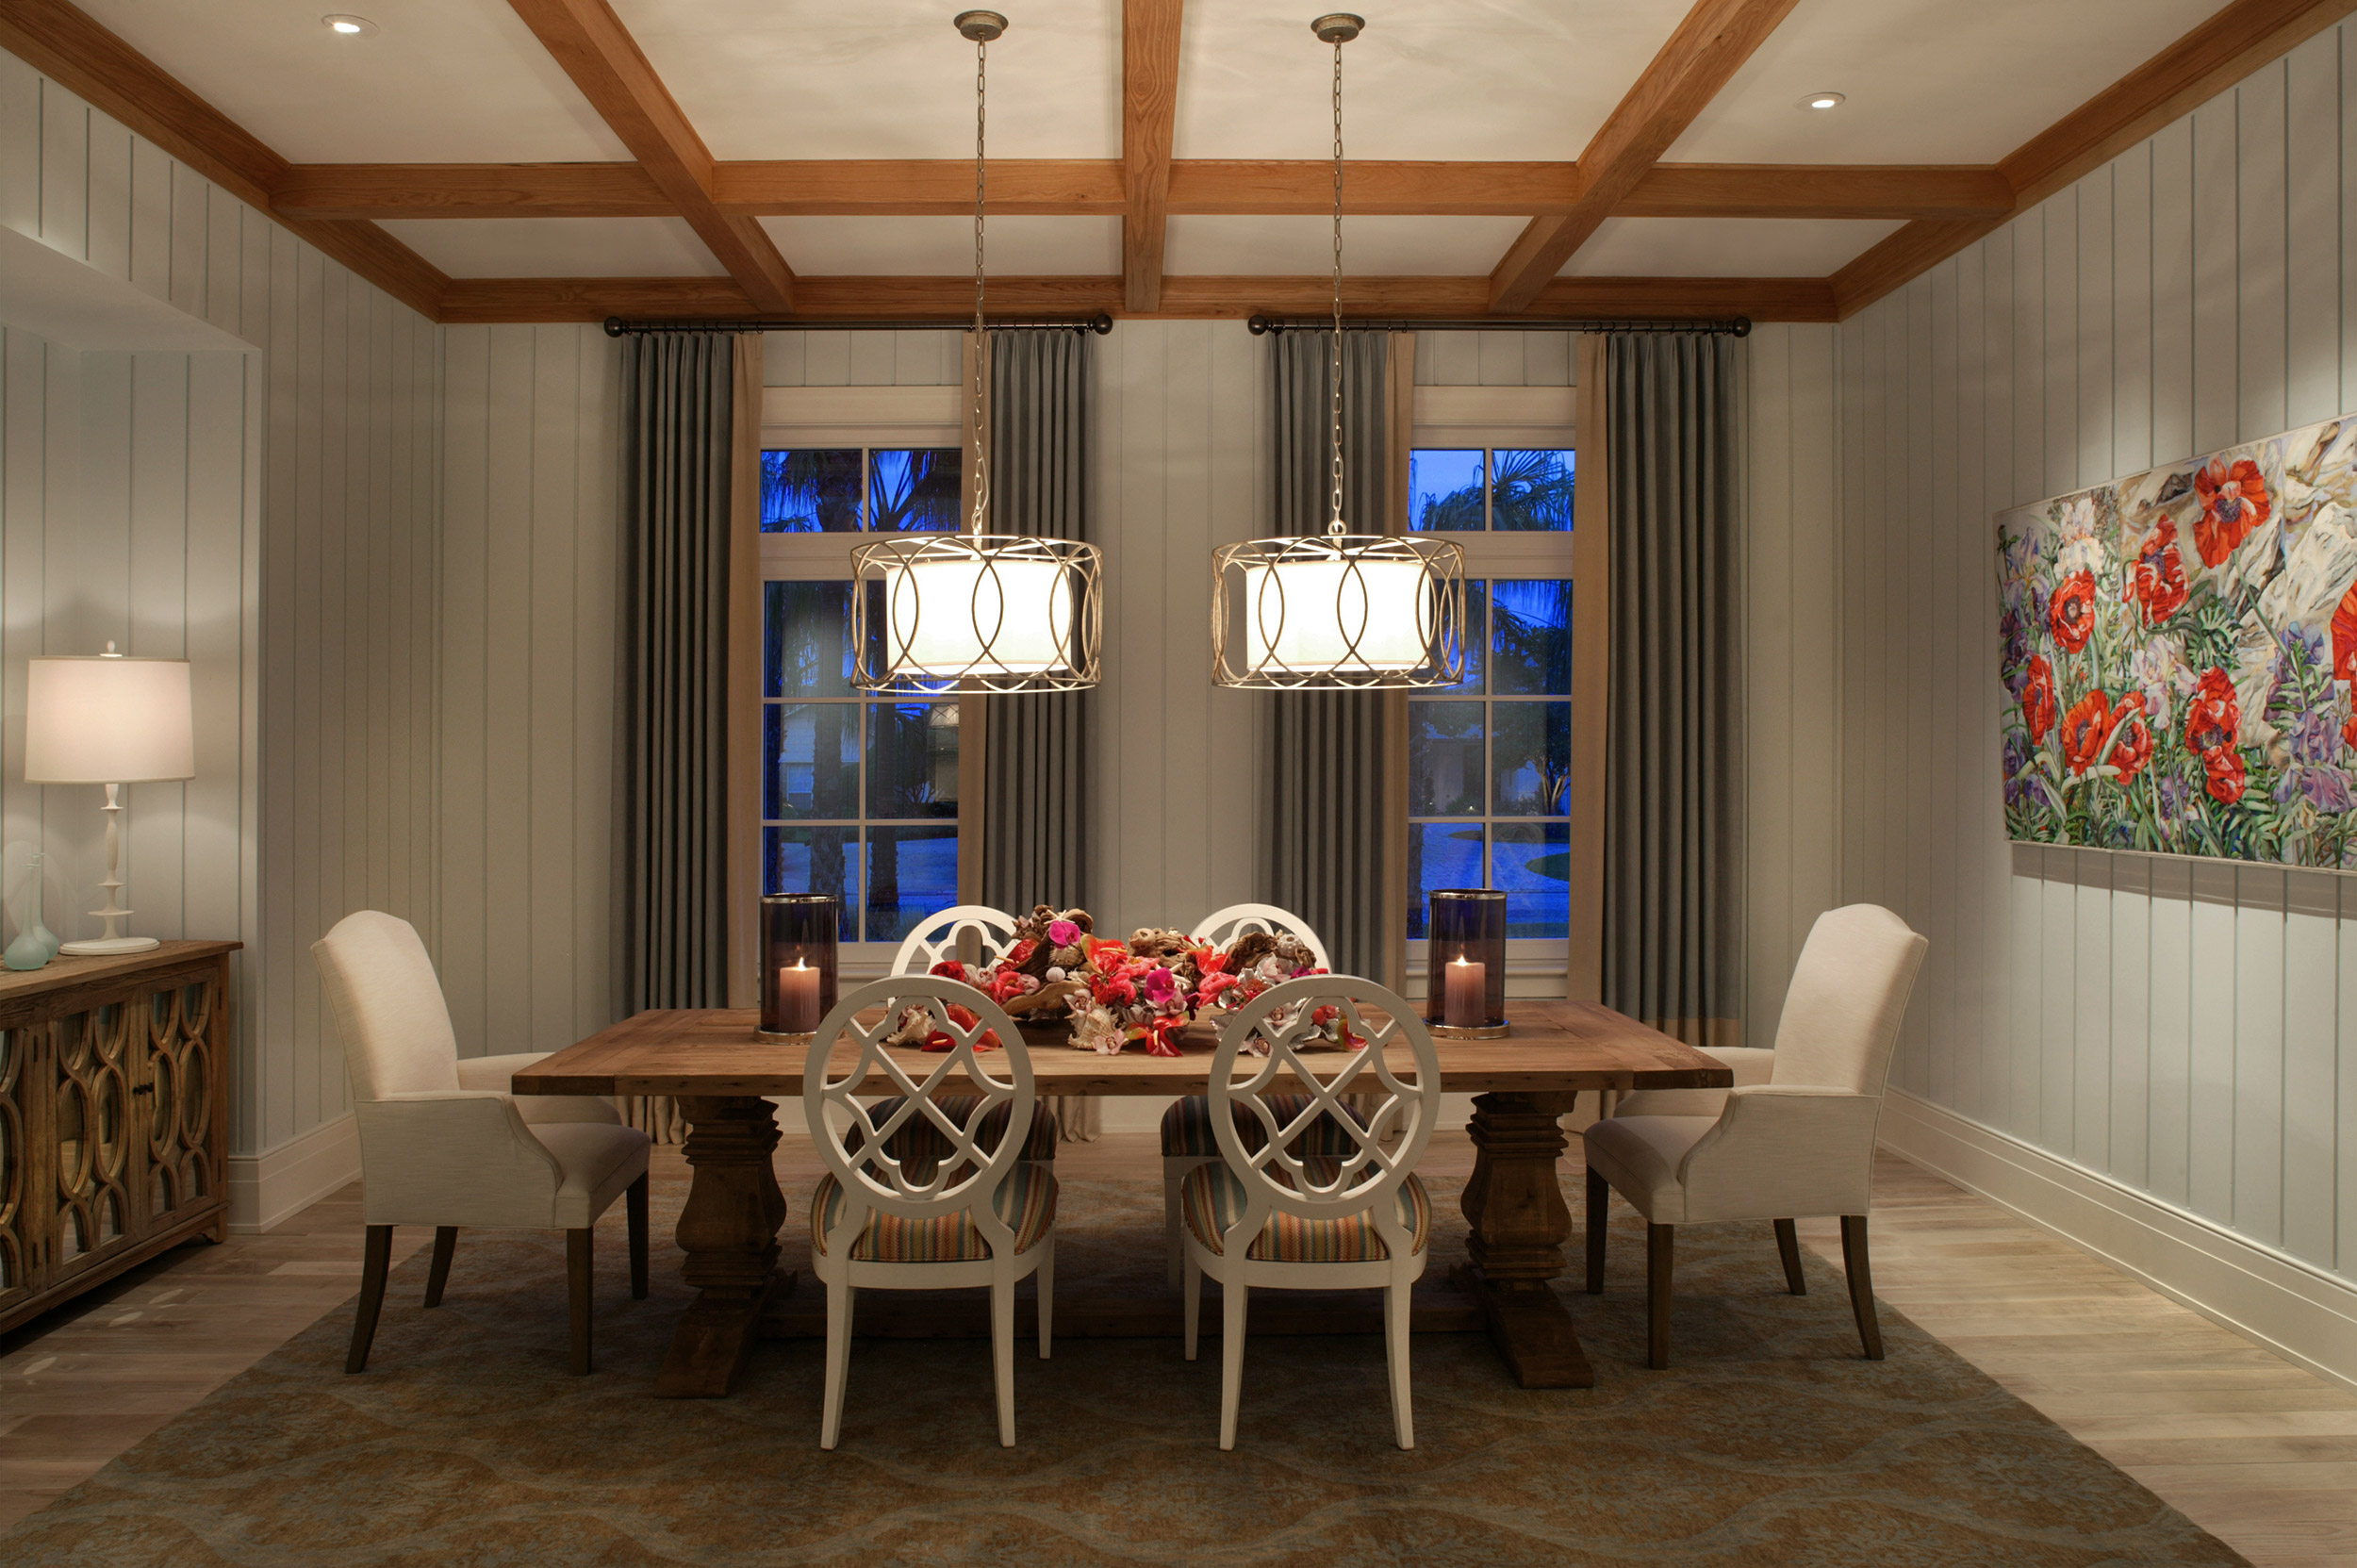 Callaghan_Dining_Room